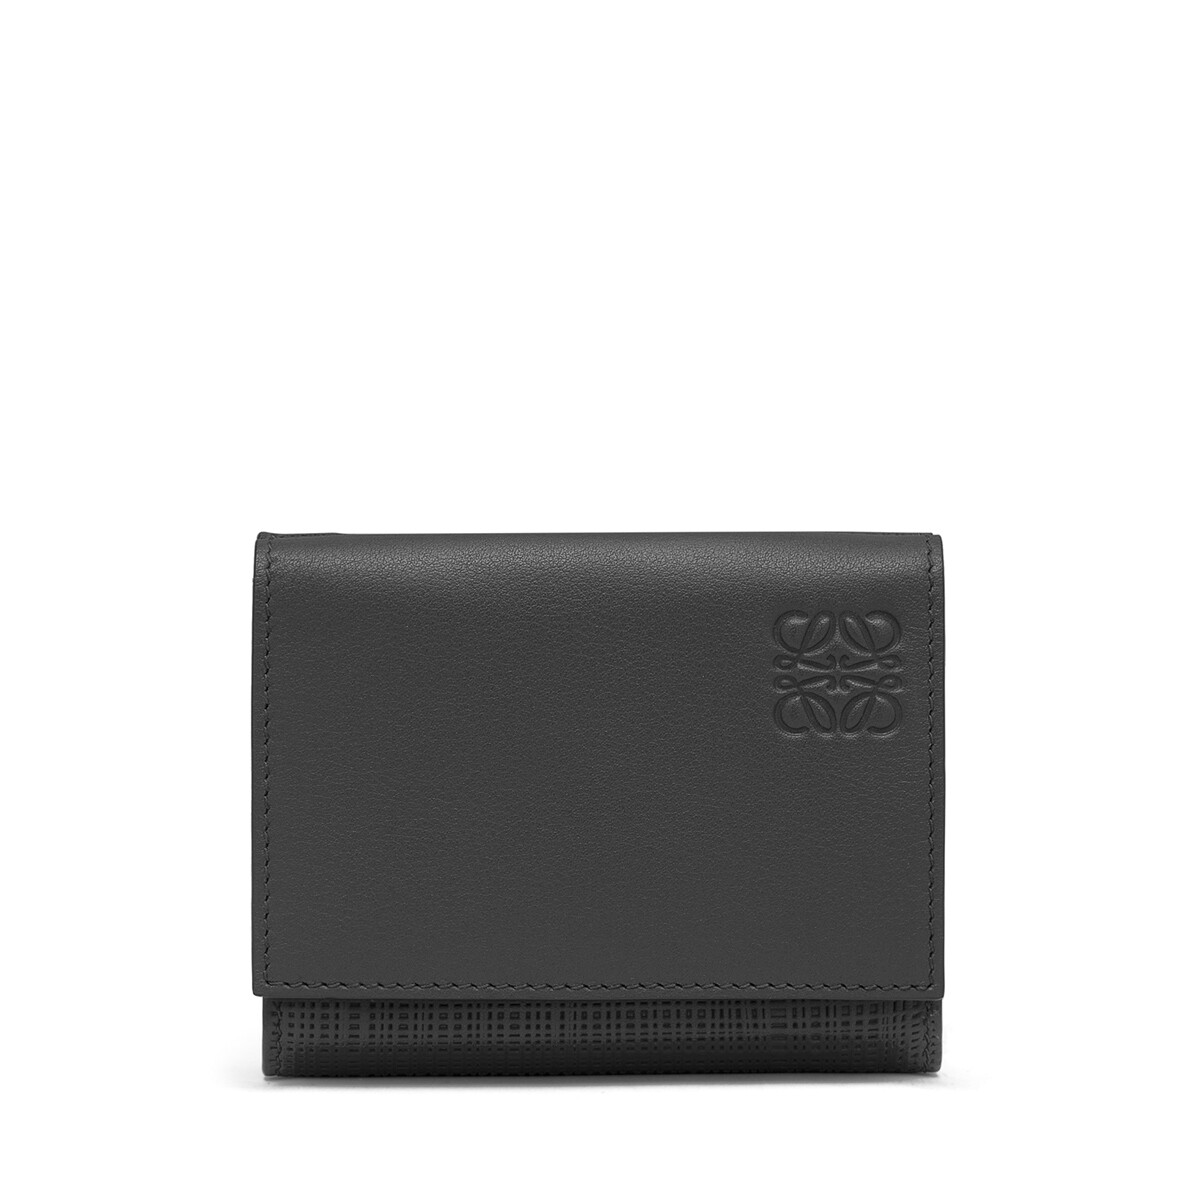 LOEWE Cartera Trifold Linen Negro front